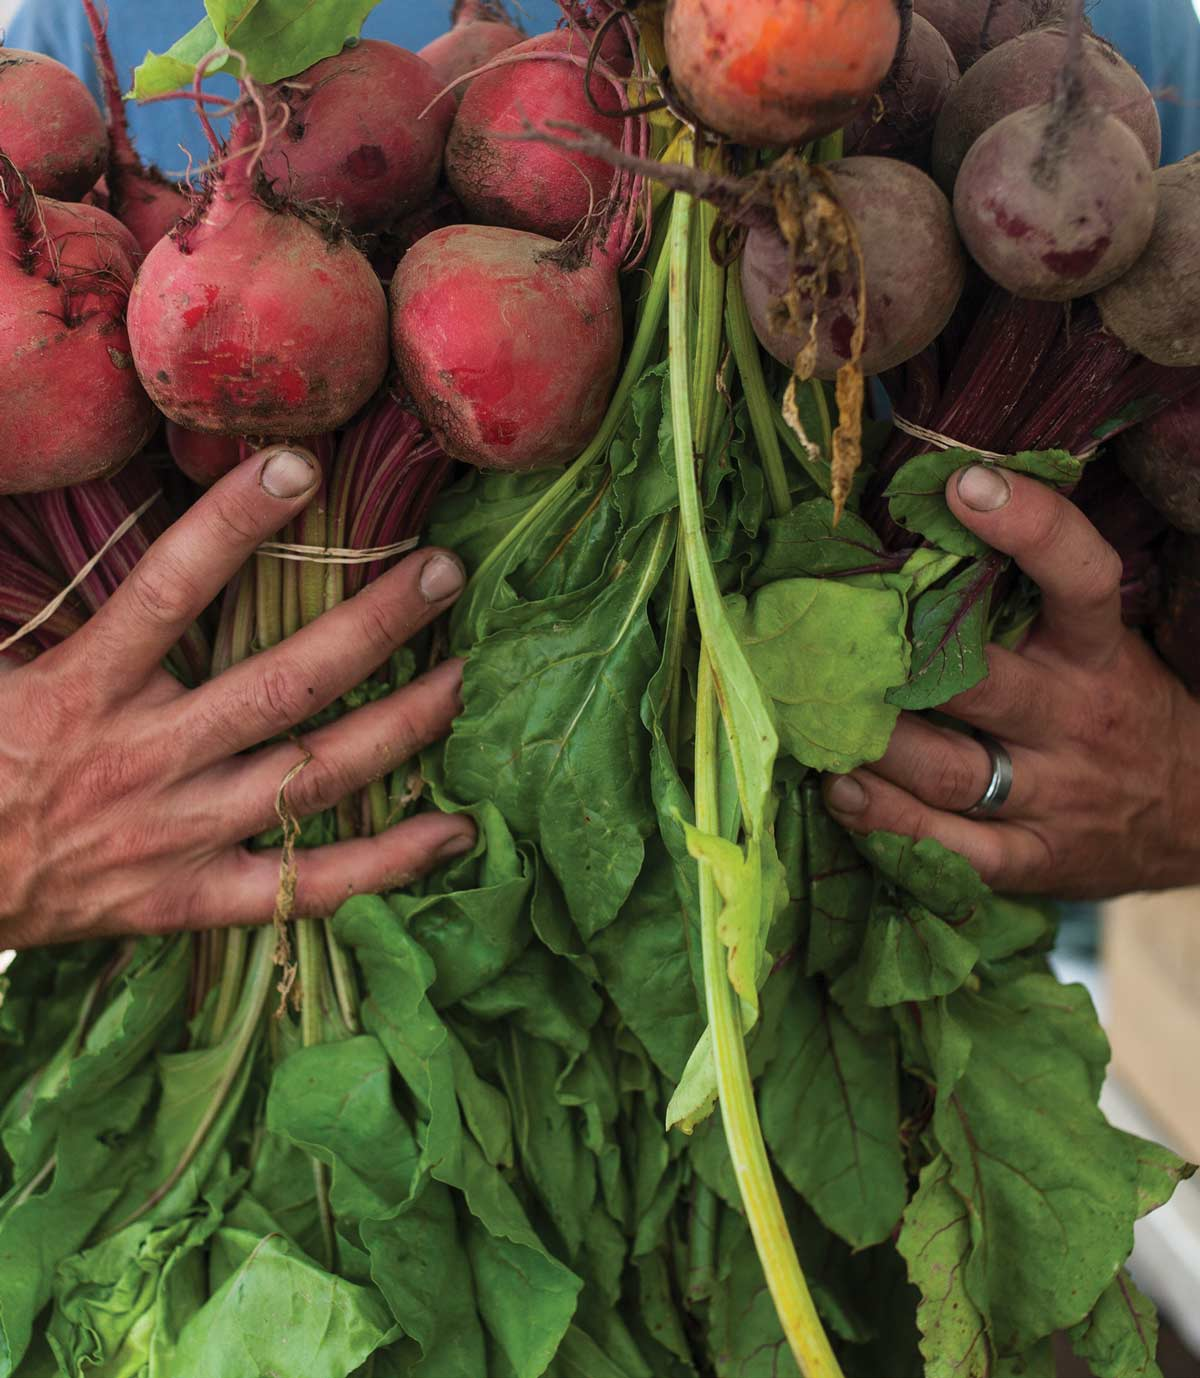 Image of beets